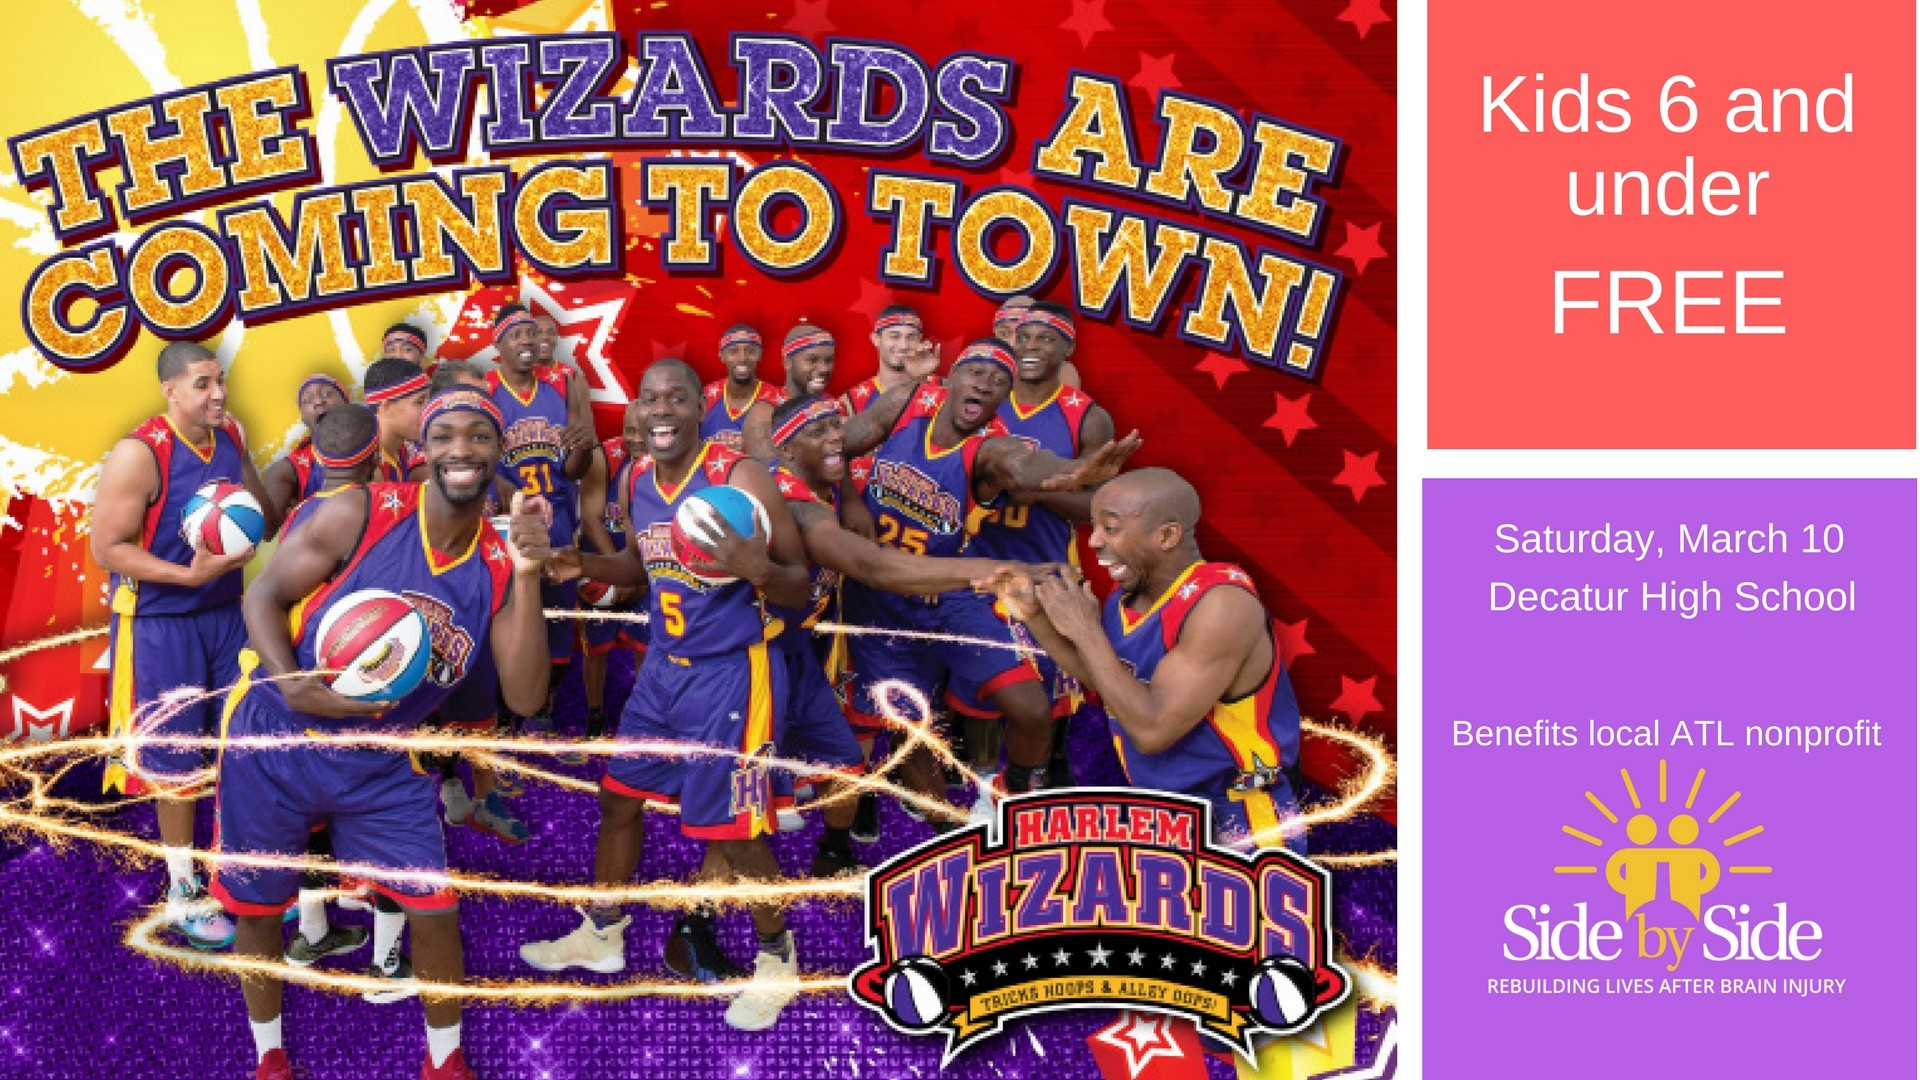 Jawbones and Sawbones vs Harlem Wizards